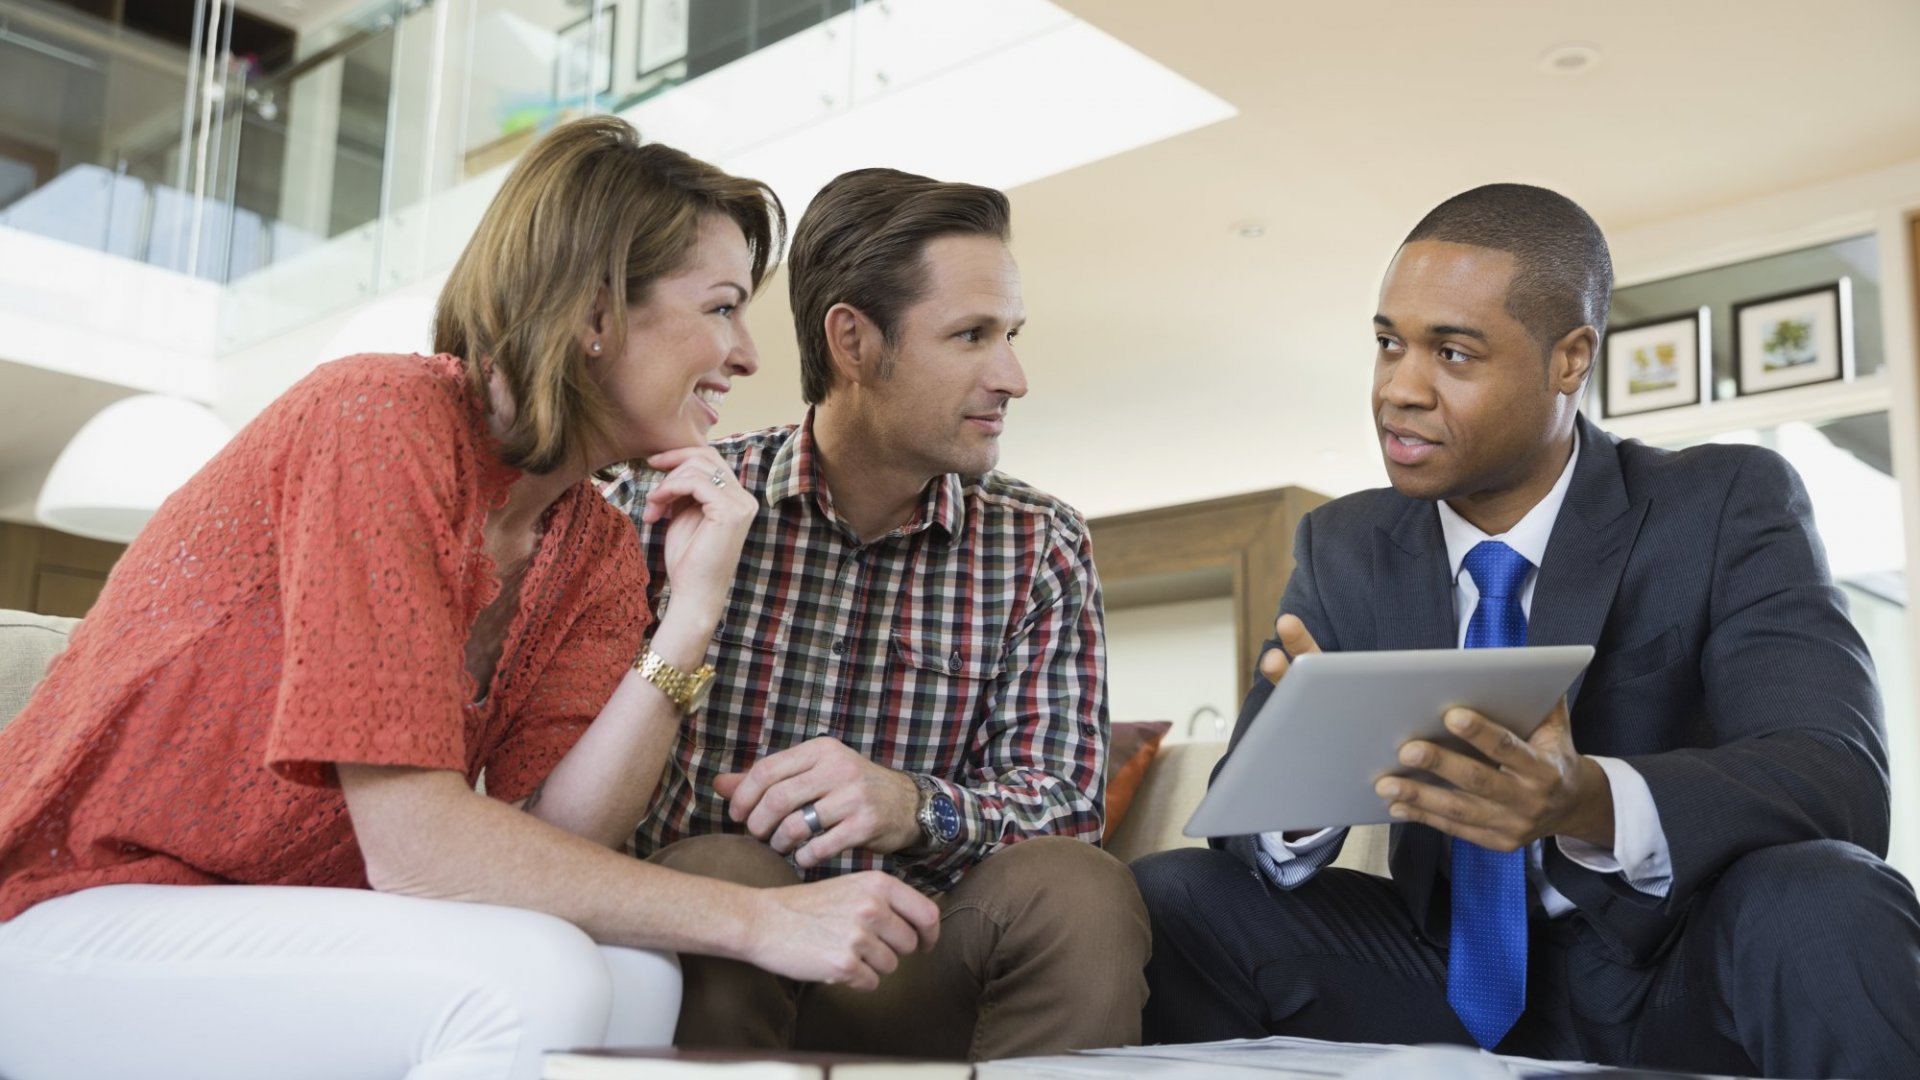 5 Key Areas for Maximizing Return on Advice From Your Financial Adviser